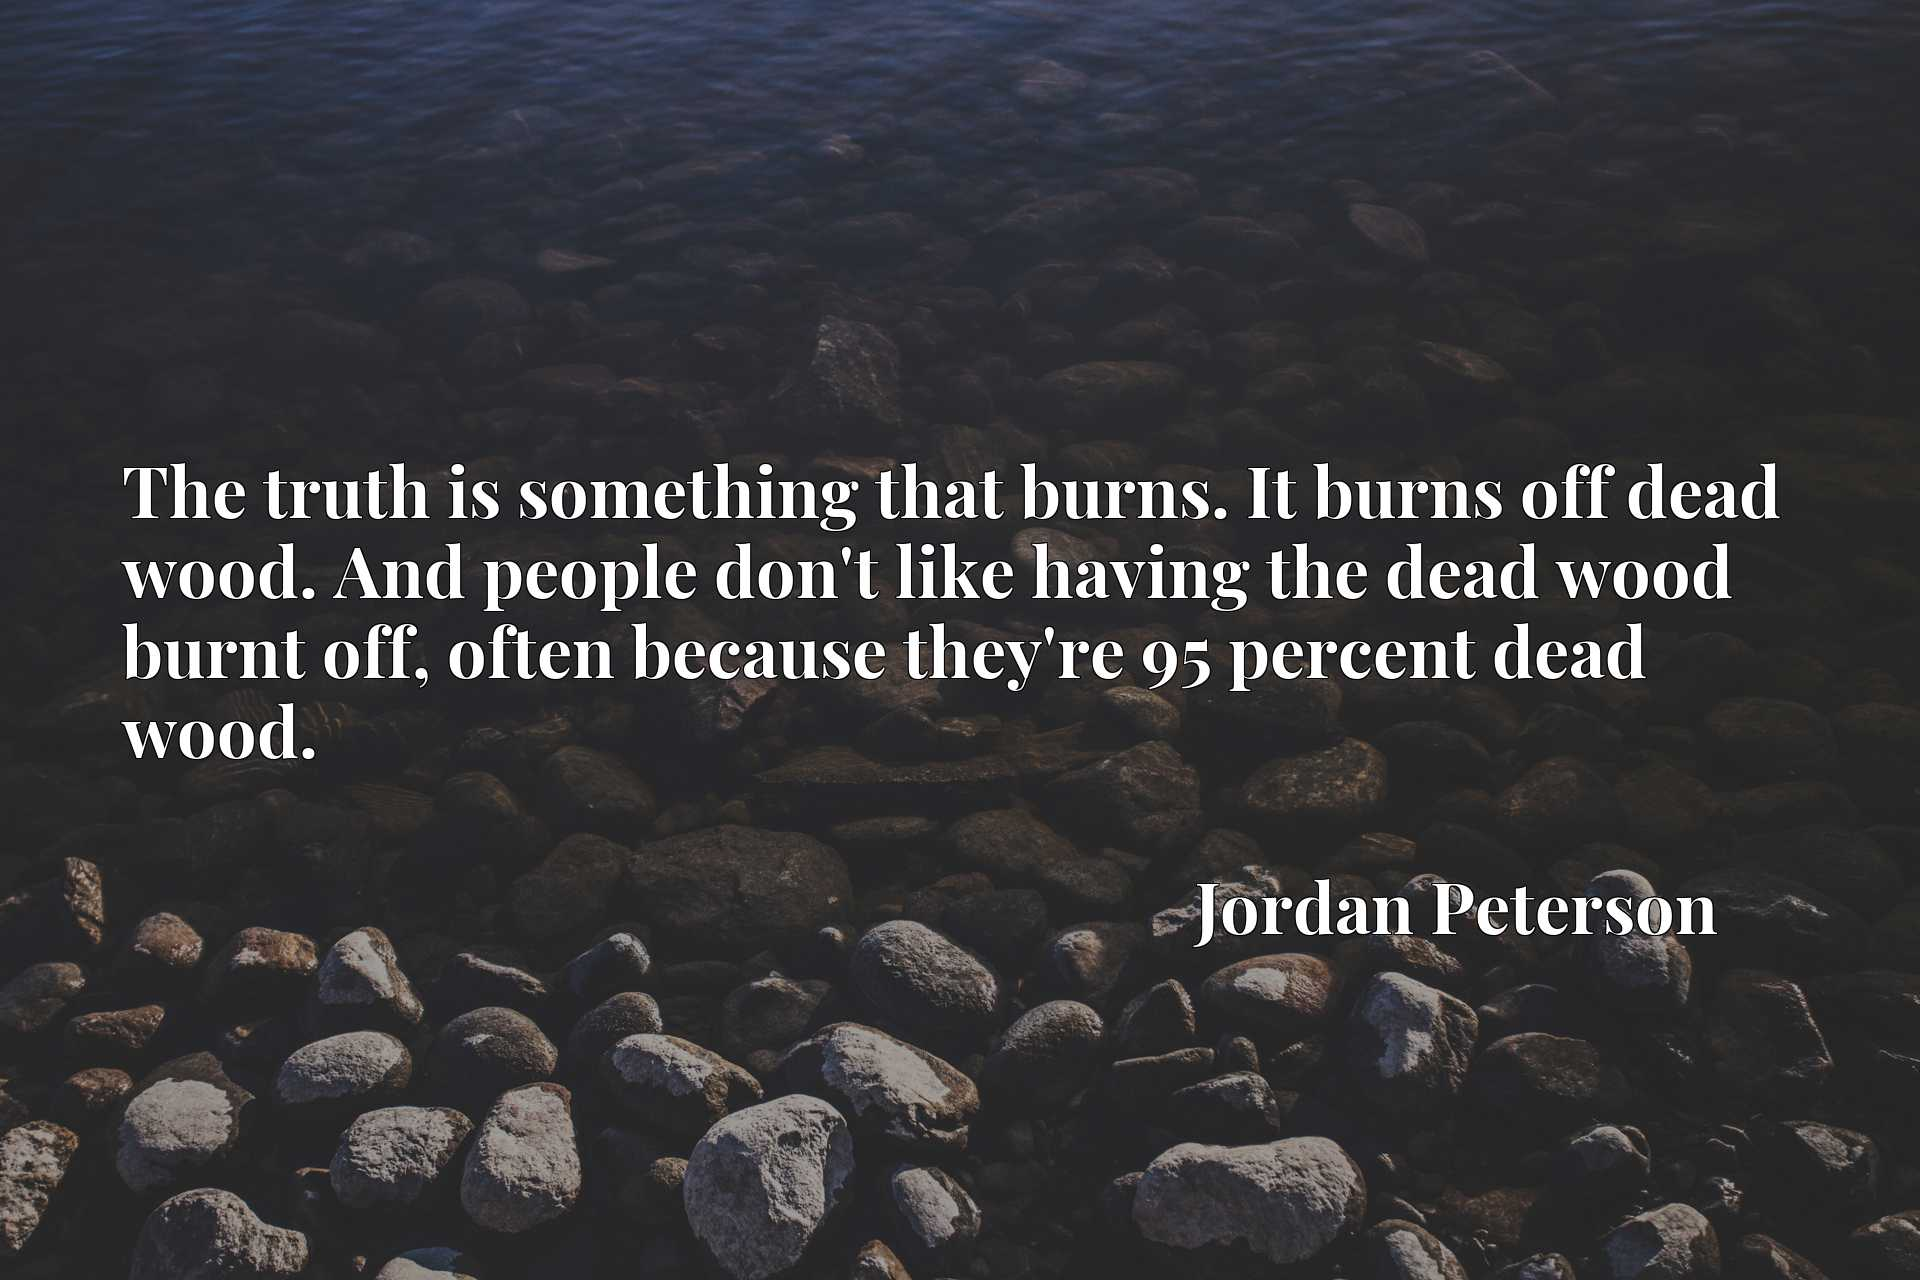 The truth is something that burns. It burns off dead wood. And people don't like having the dead wood burnt off, often because they're 95 percent dead wood.